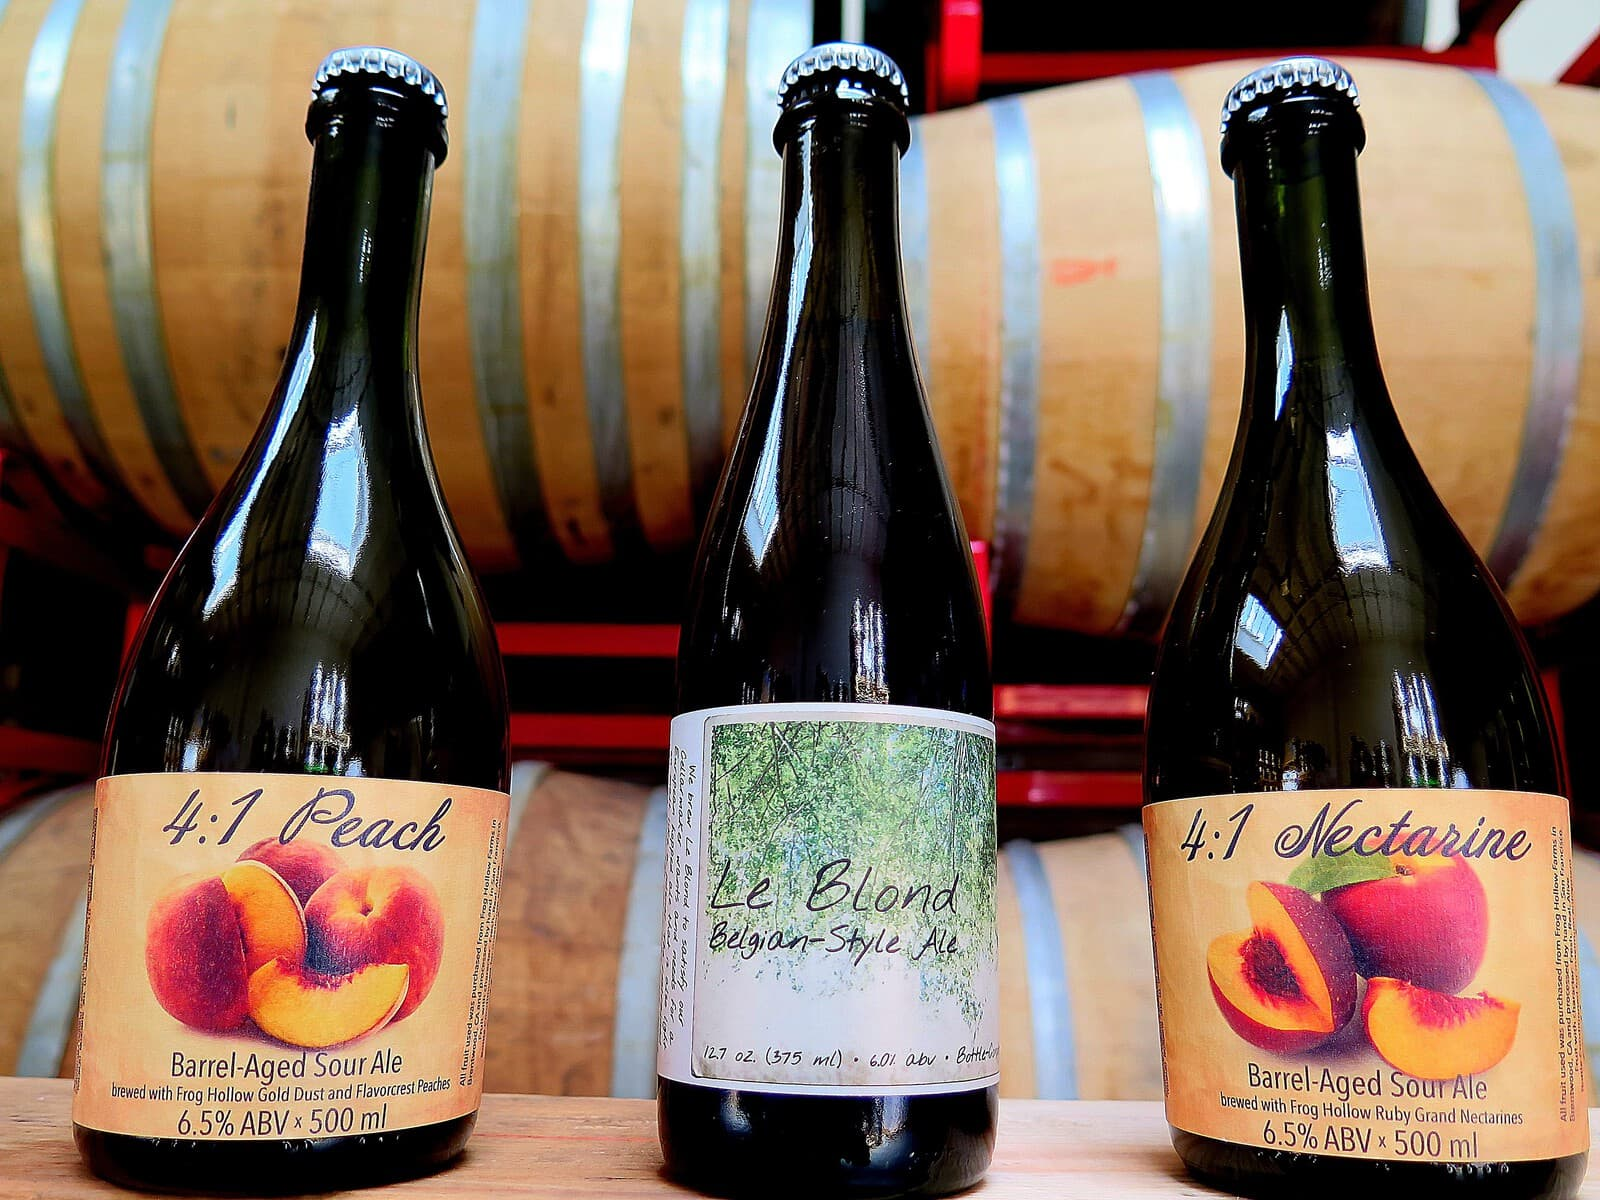 Le Blond & 4:1 Bottles ~ Sold Out